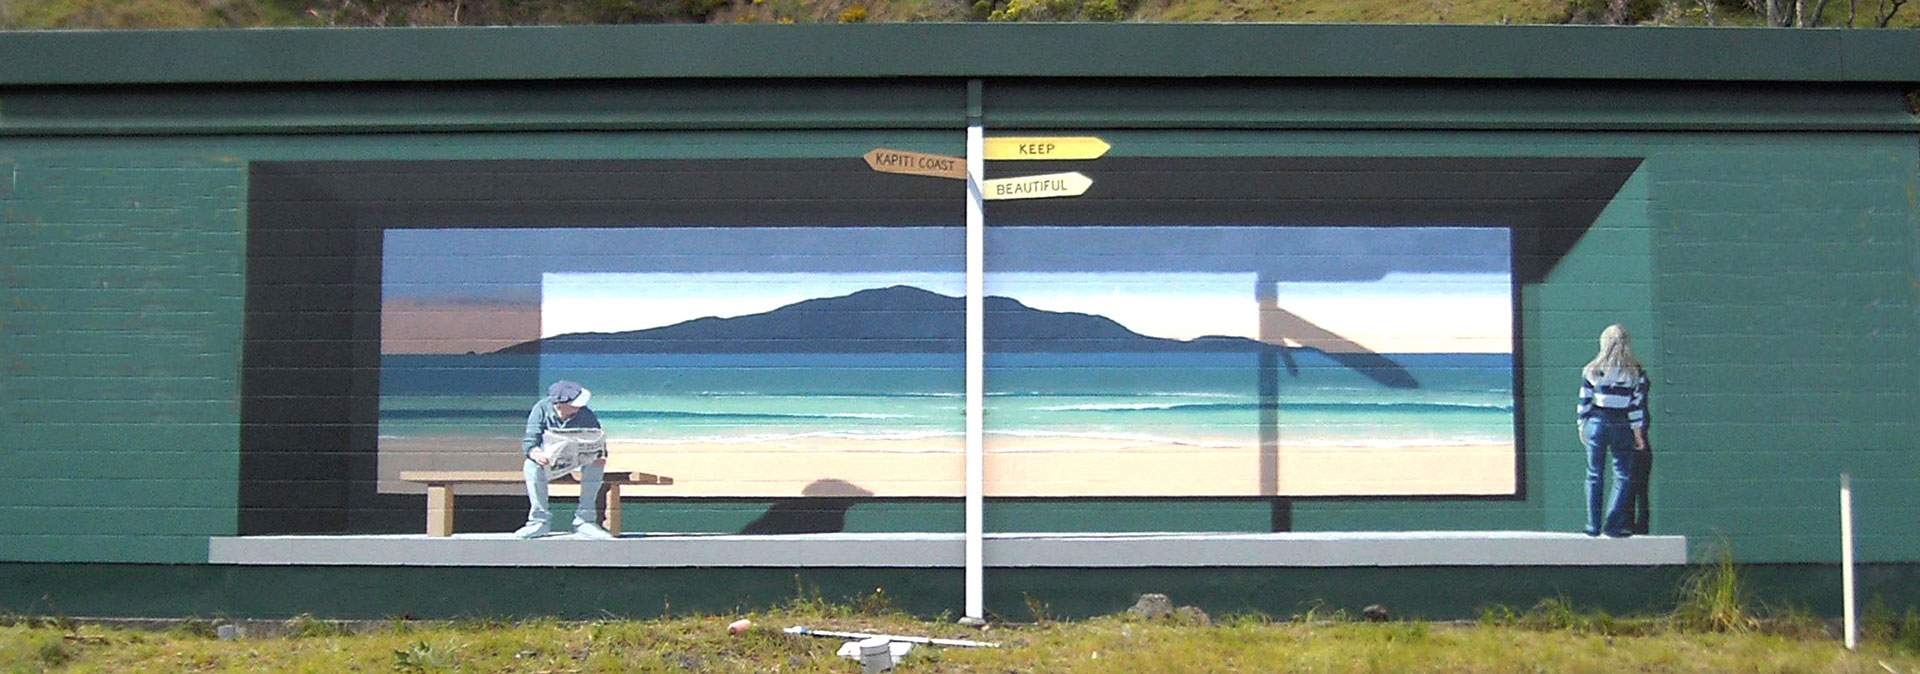 Header-image-2 Illusion murals